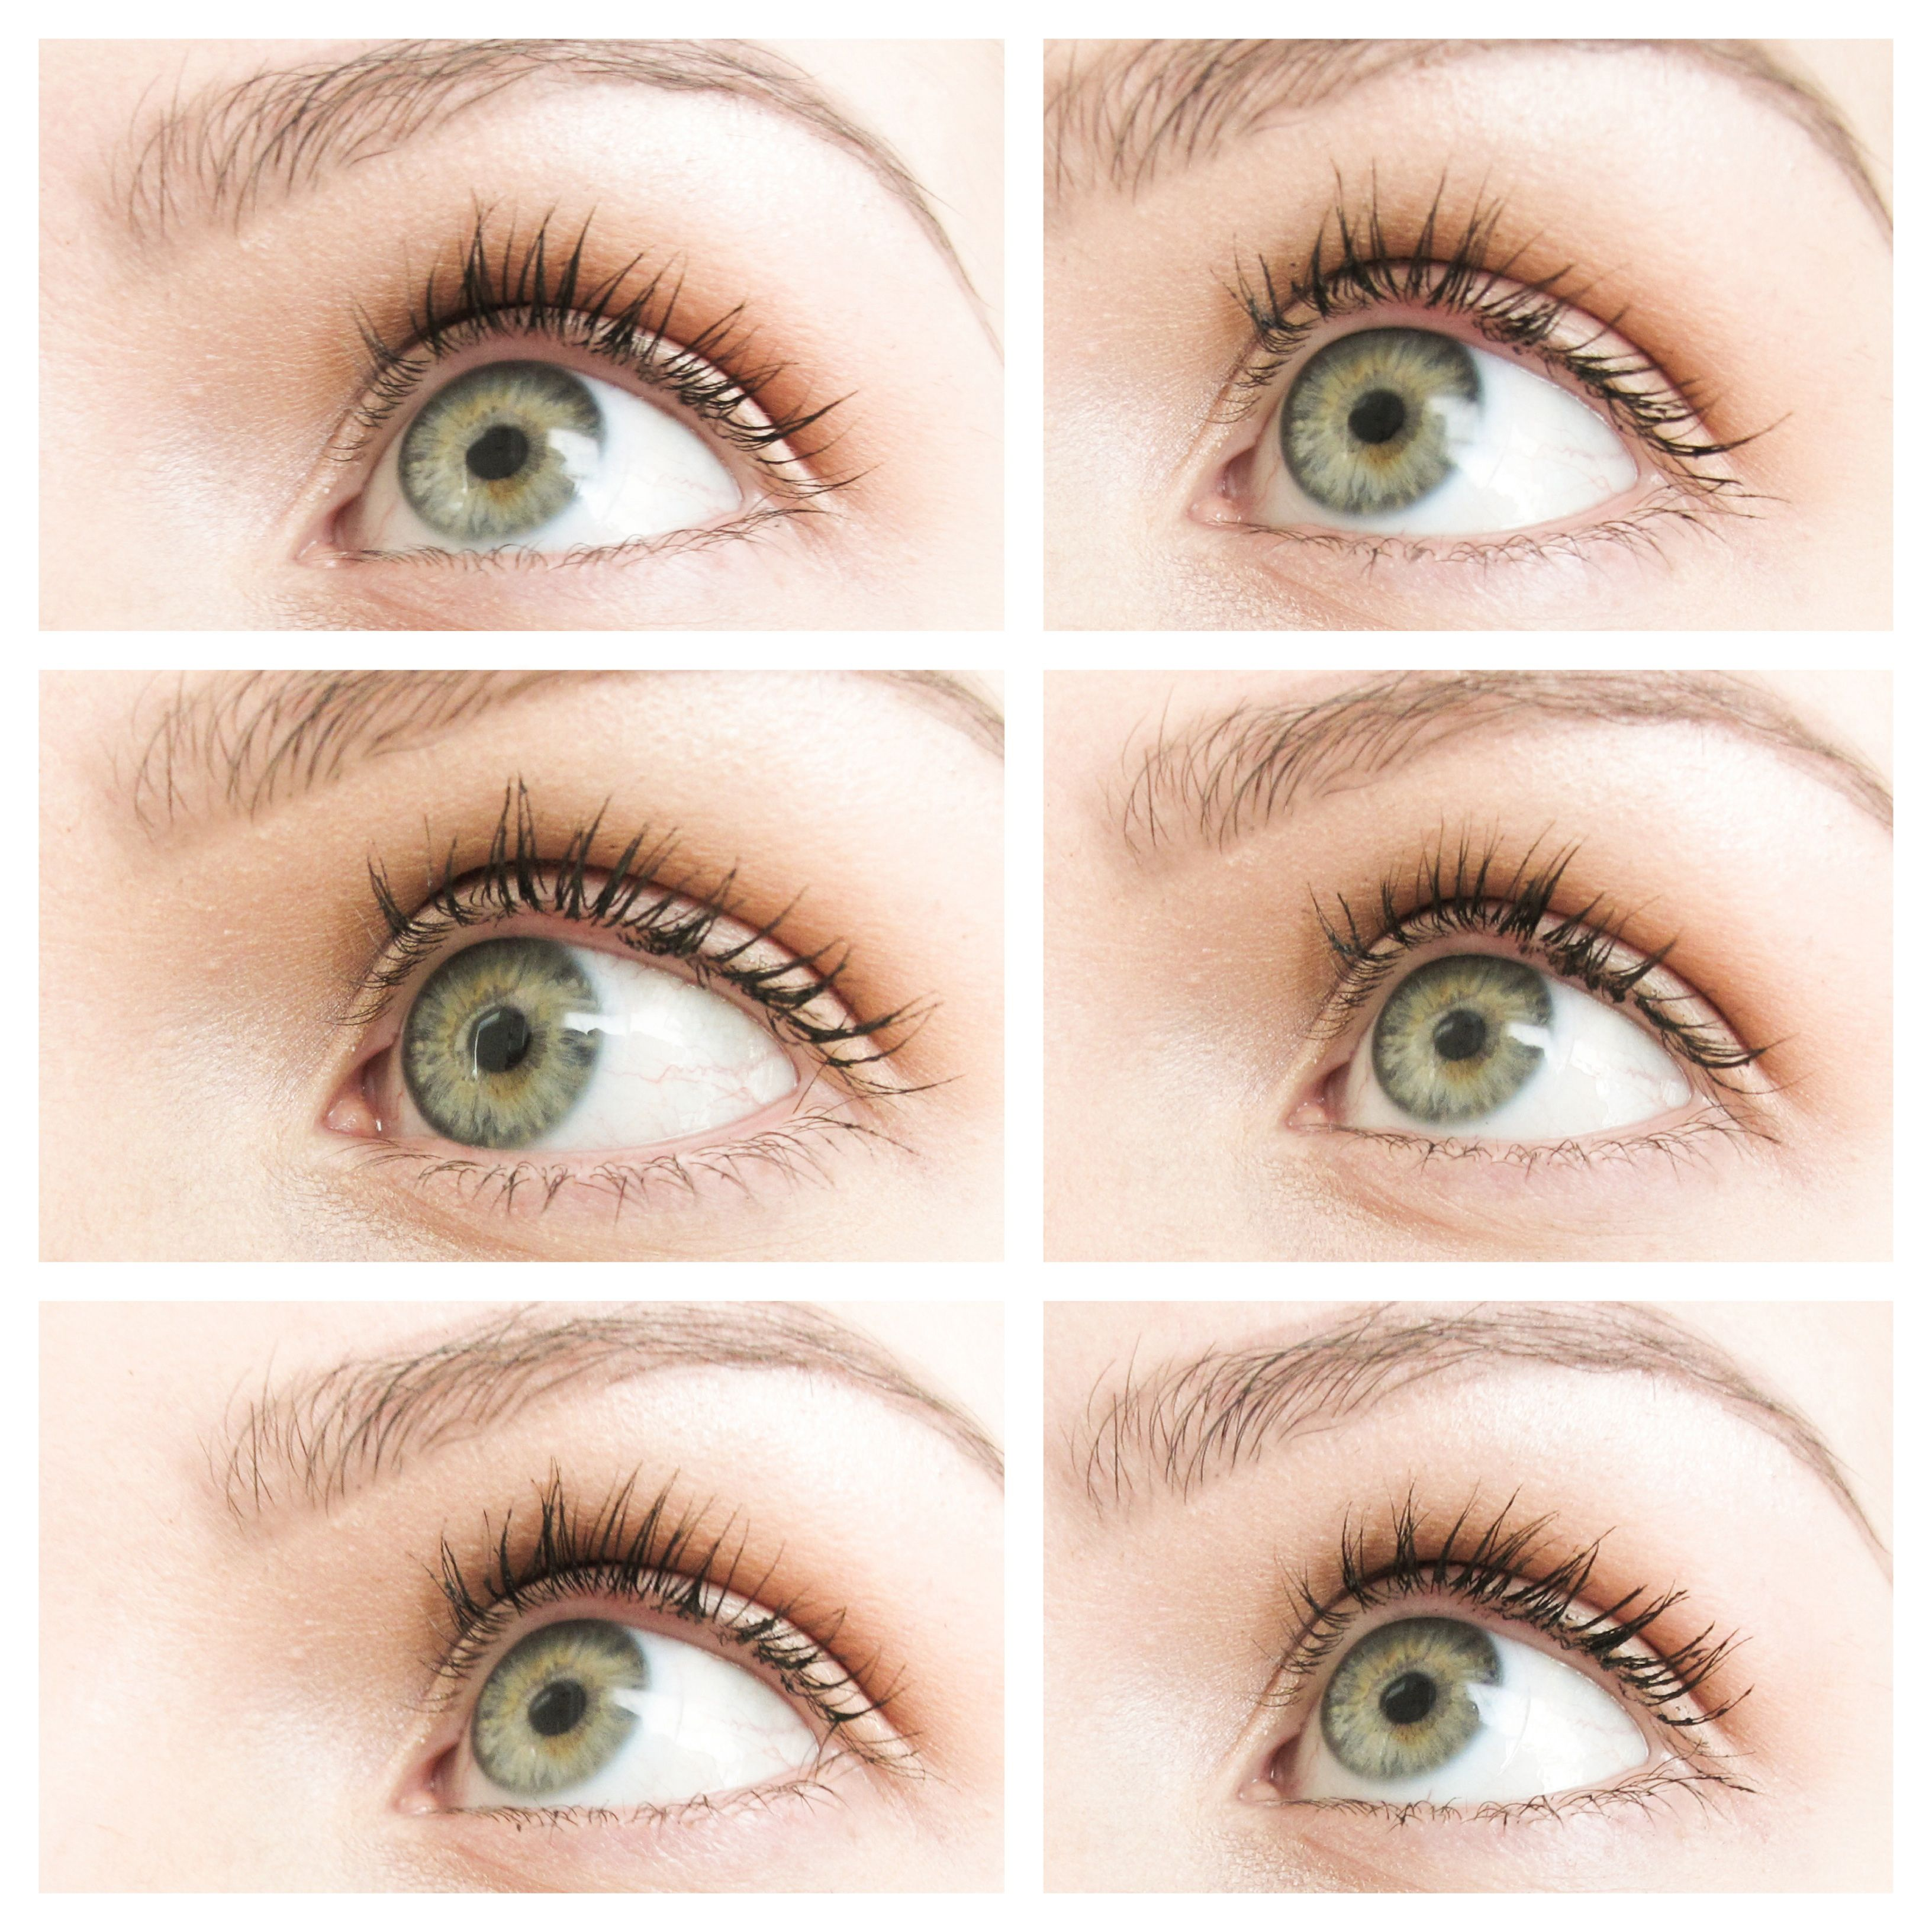 0c0af5ae946 Green Beauty mascara showdown! ROW 1: Alima / Kjaer Weis ROW 2: Ilia / RMS  Volumizing ROW 3: RMS Defining / W3LL People- These are all great cleaner  ...